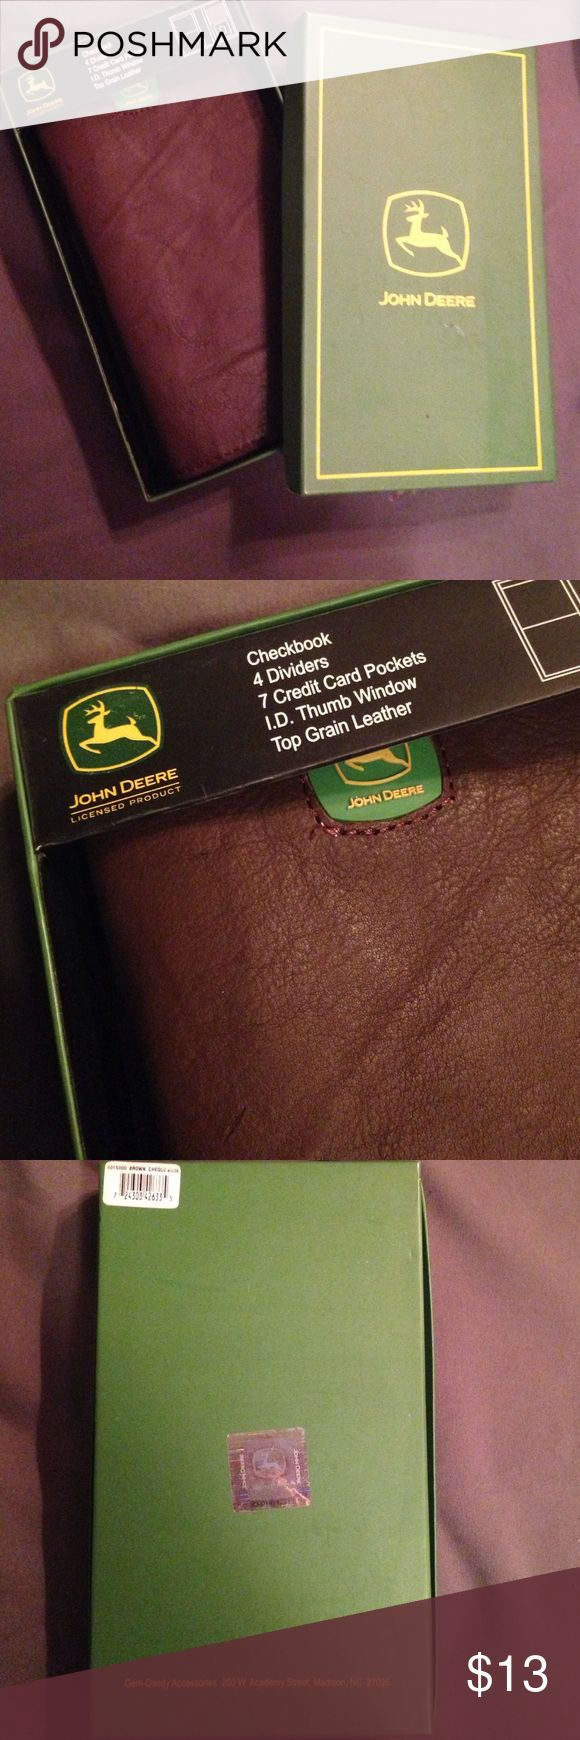 NEW IN BOX Leather John Deere Checkbook Wallet ID Never used, still in original box. It is licensed. Holds a checkbook, 7 credit cards, I.D. and has 4 dividers. Box isn't in perfect condition, but wallet is. John Deere Bags Wallets